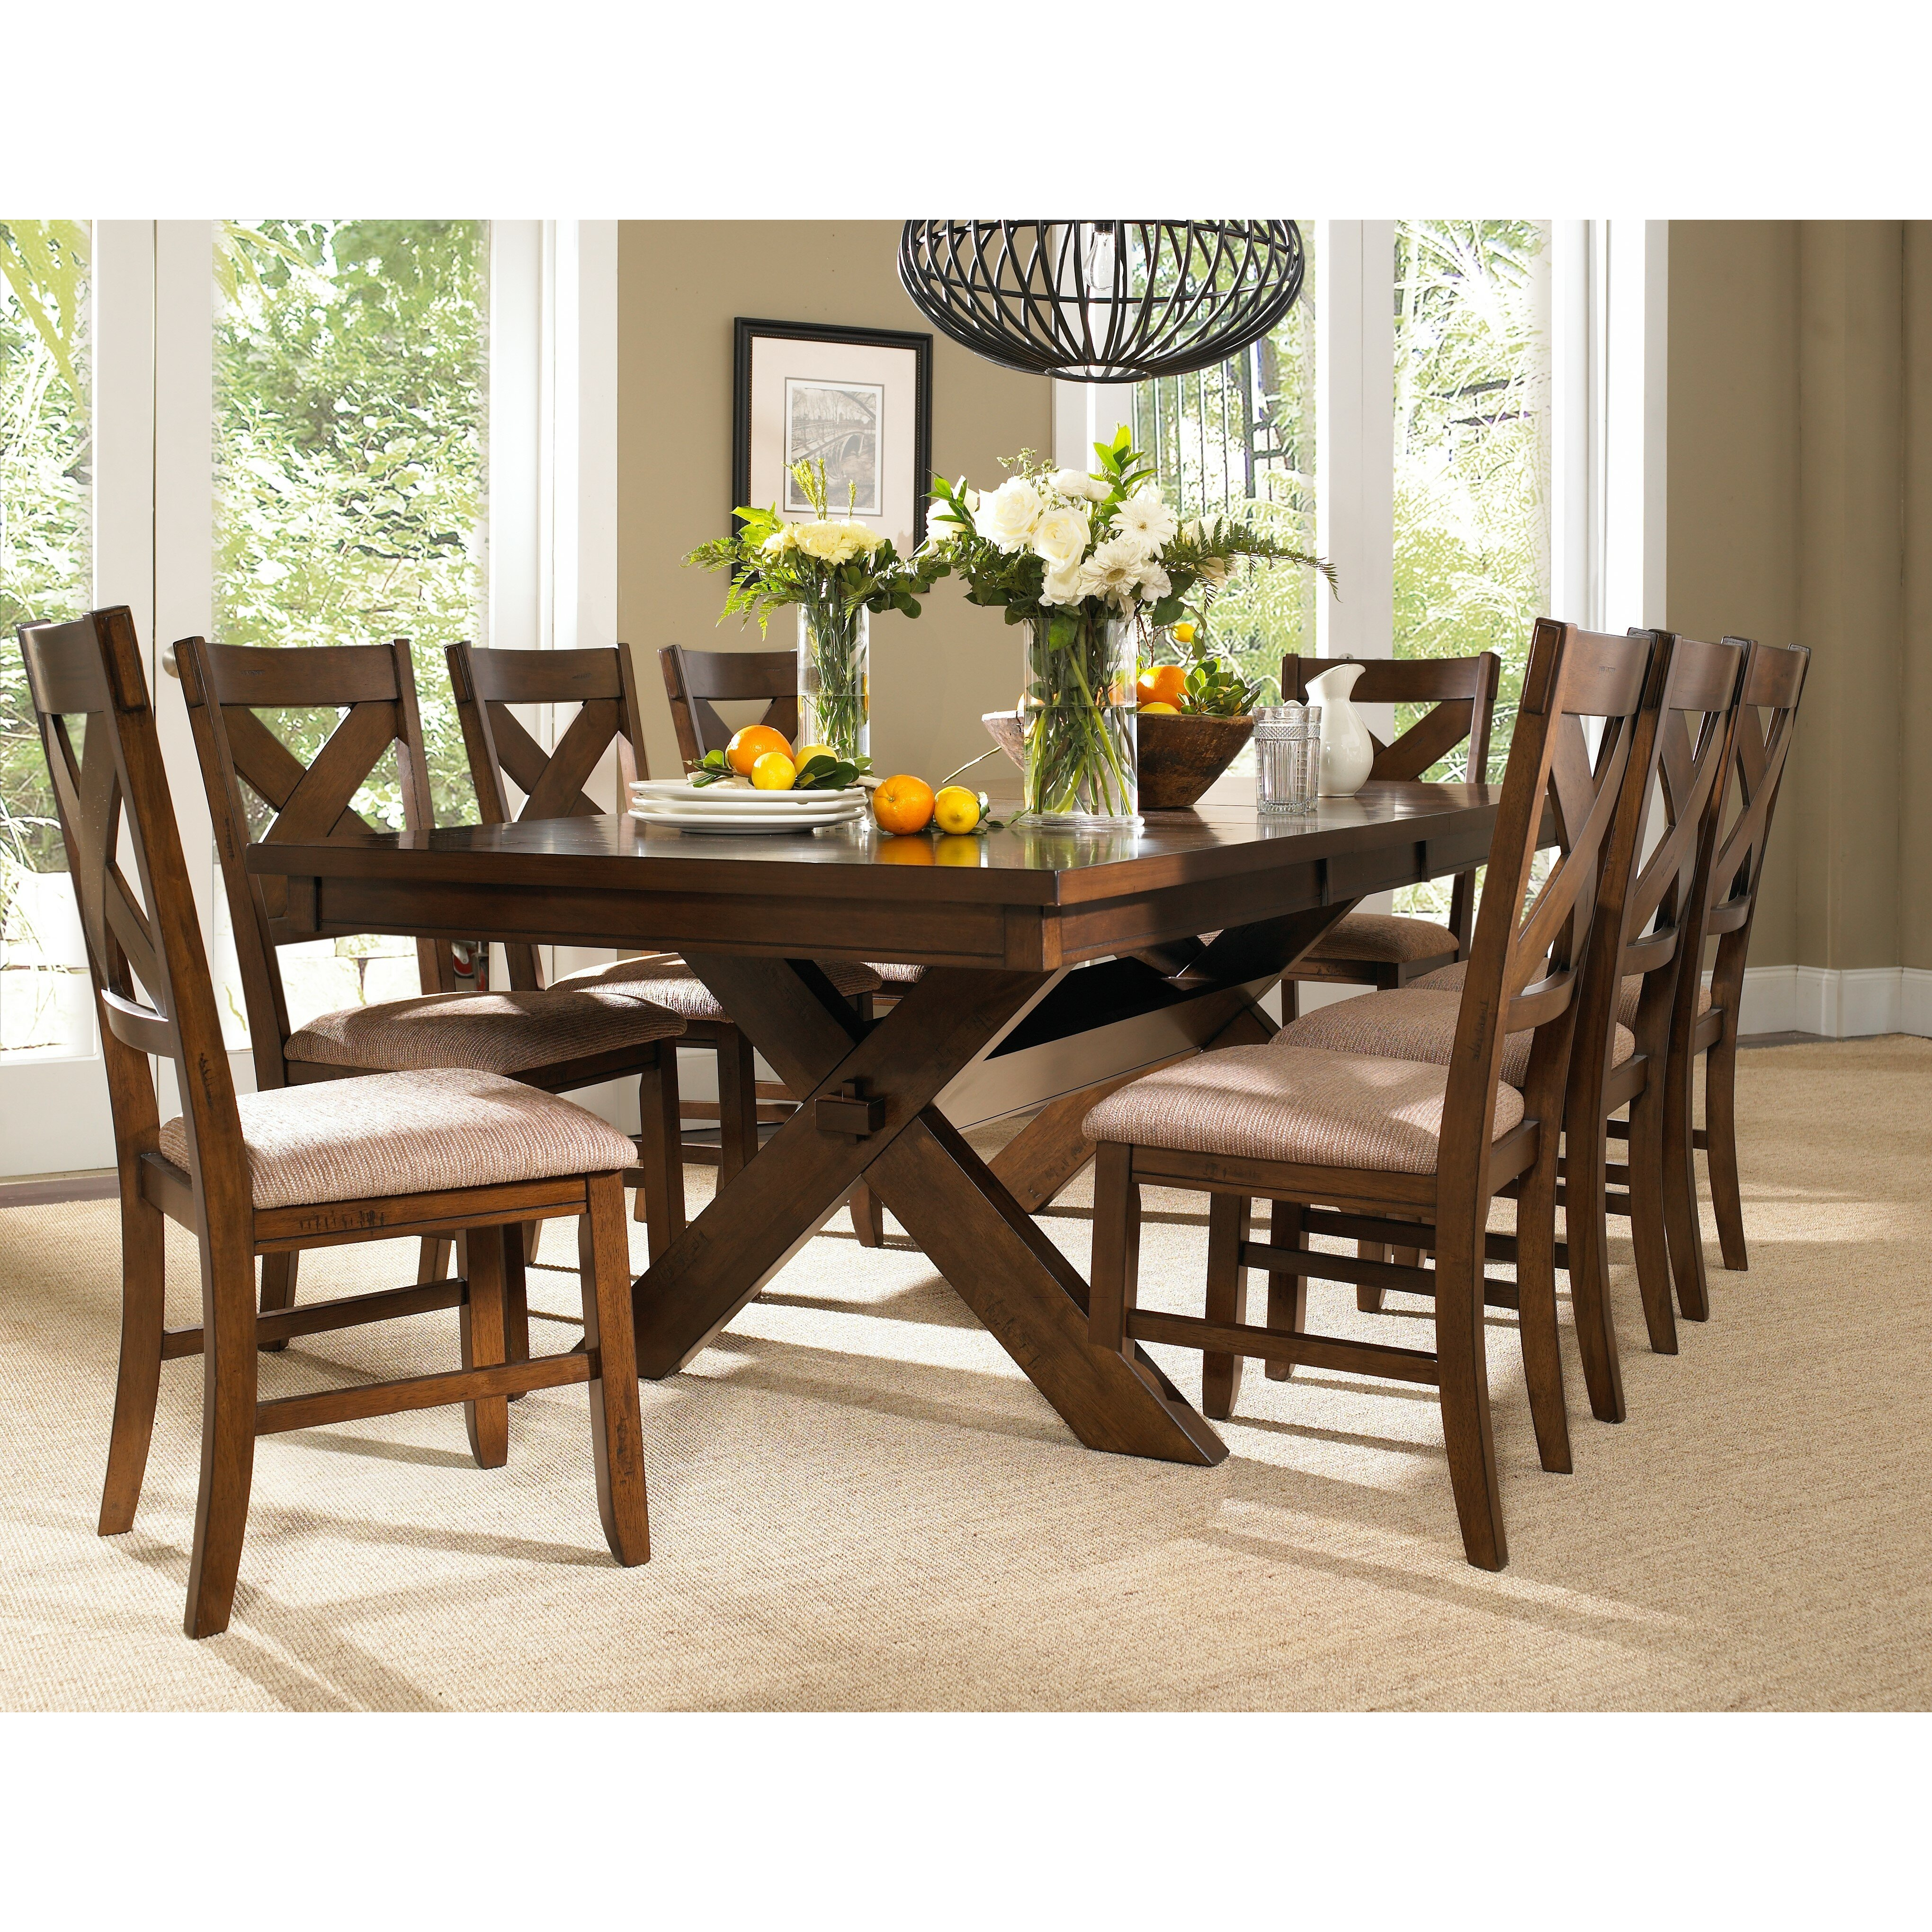 Roundhill furniture karven 9 piece dining set reviews for 9 piece dining room sets square